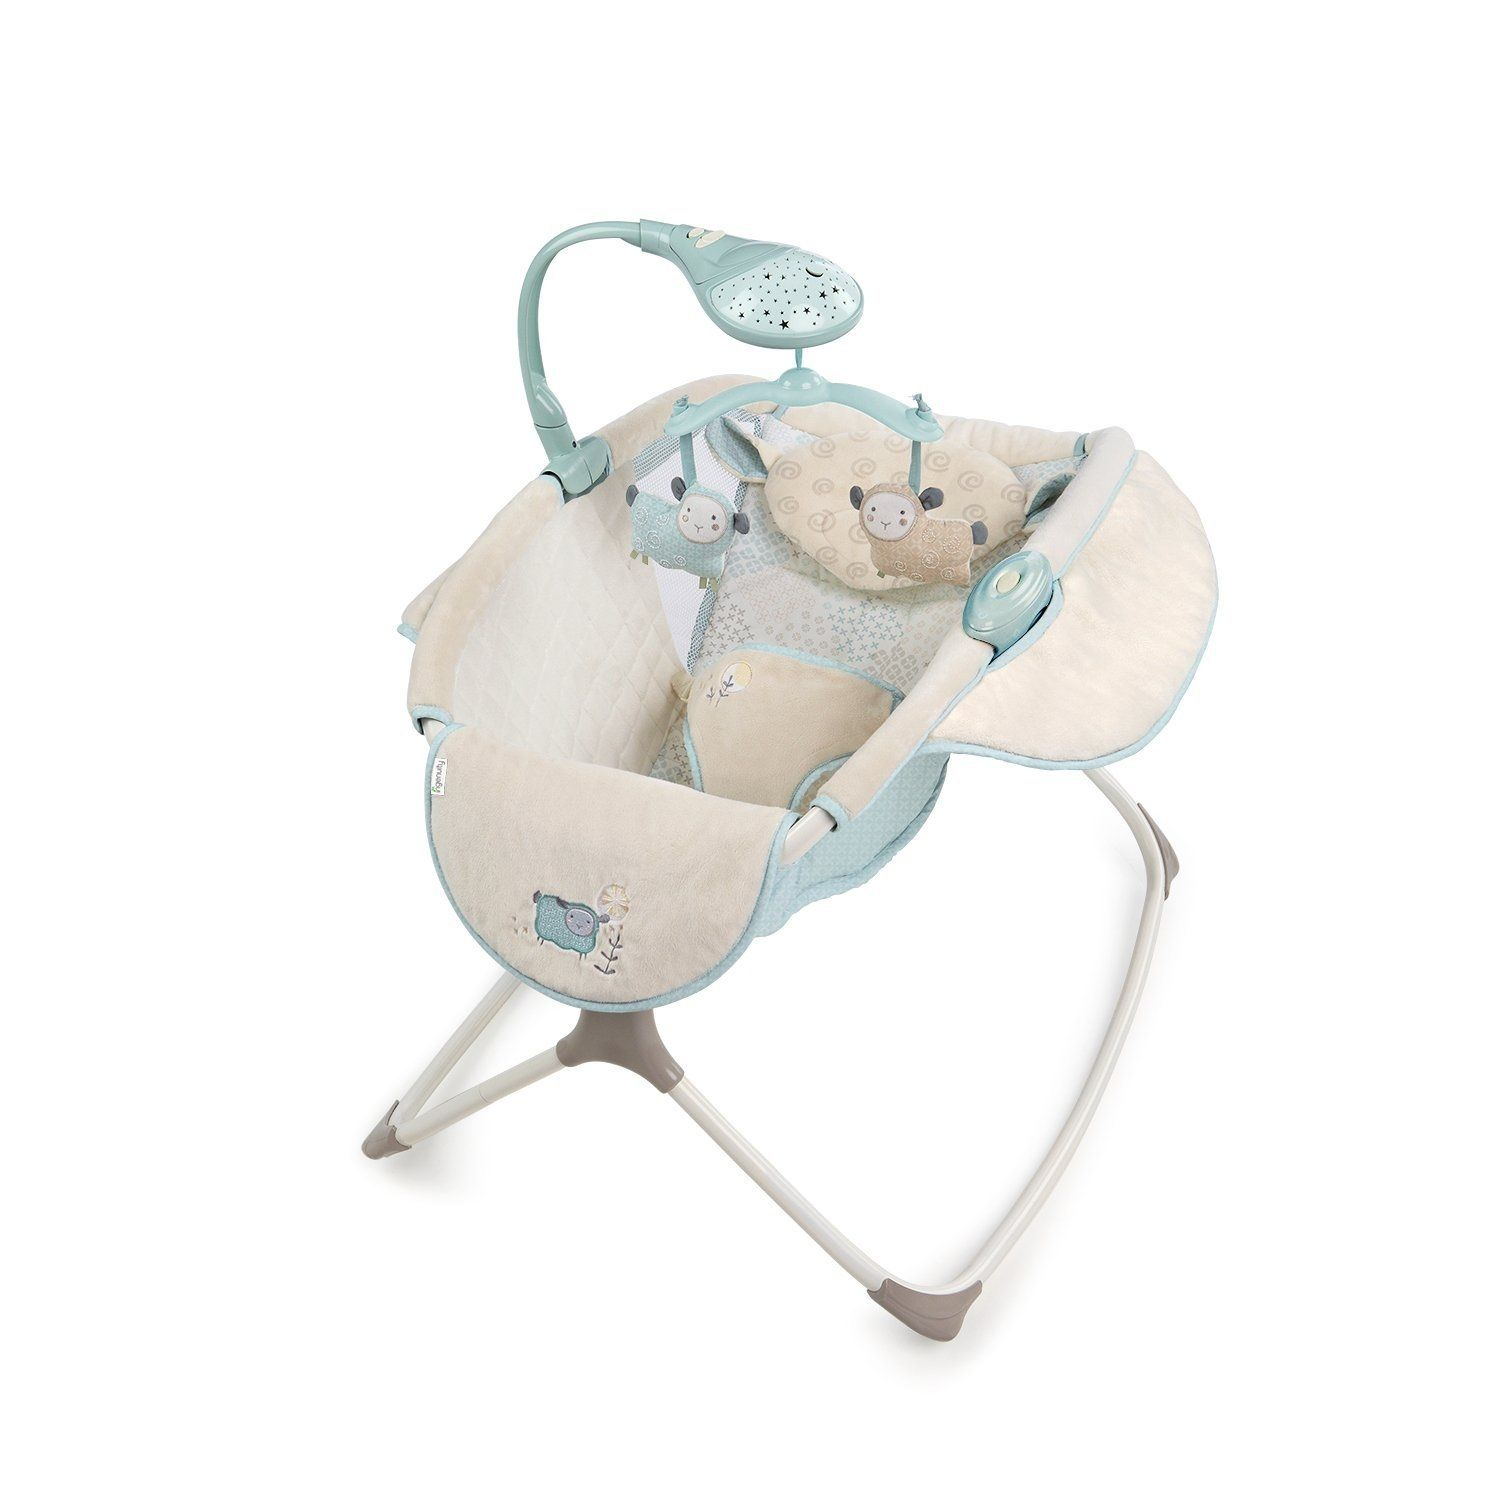 Phenomenal Pin By Ali Columbus On Baby 1 Baby Cribs Baby Bassinet Ncnpc Chair Design For Home Ncnpcorg